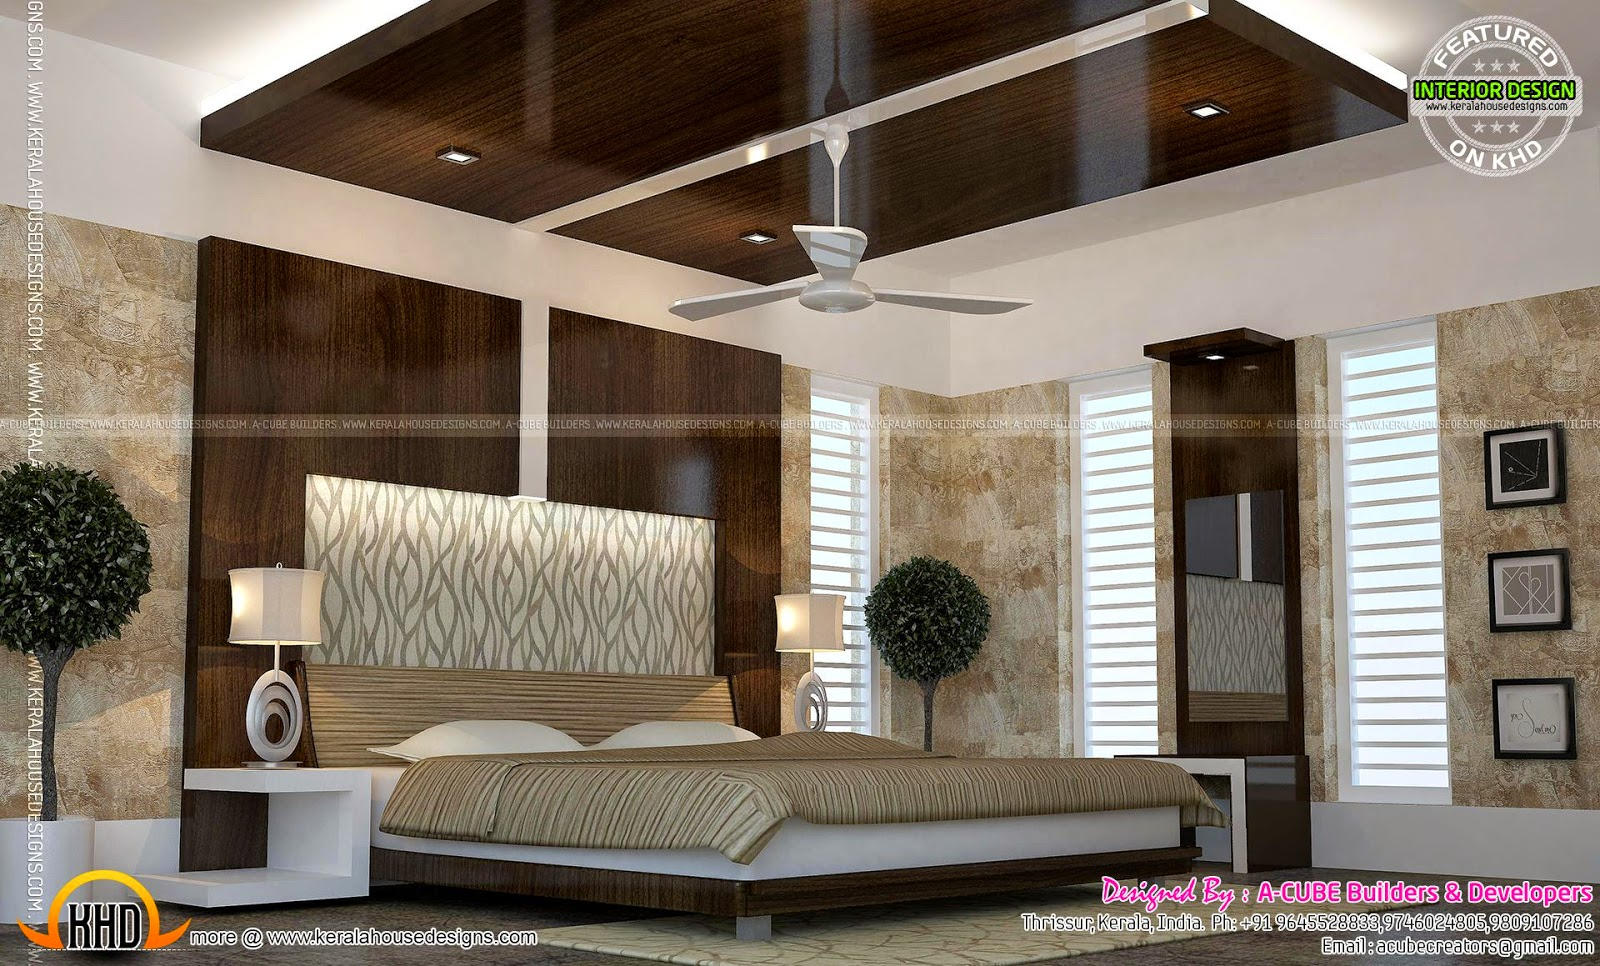 Kerala interior design ideas kerala home design and for House designs interior photos